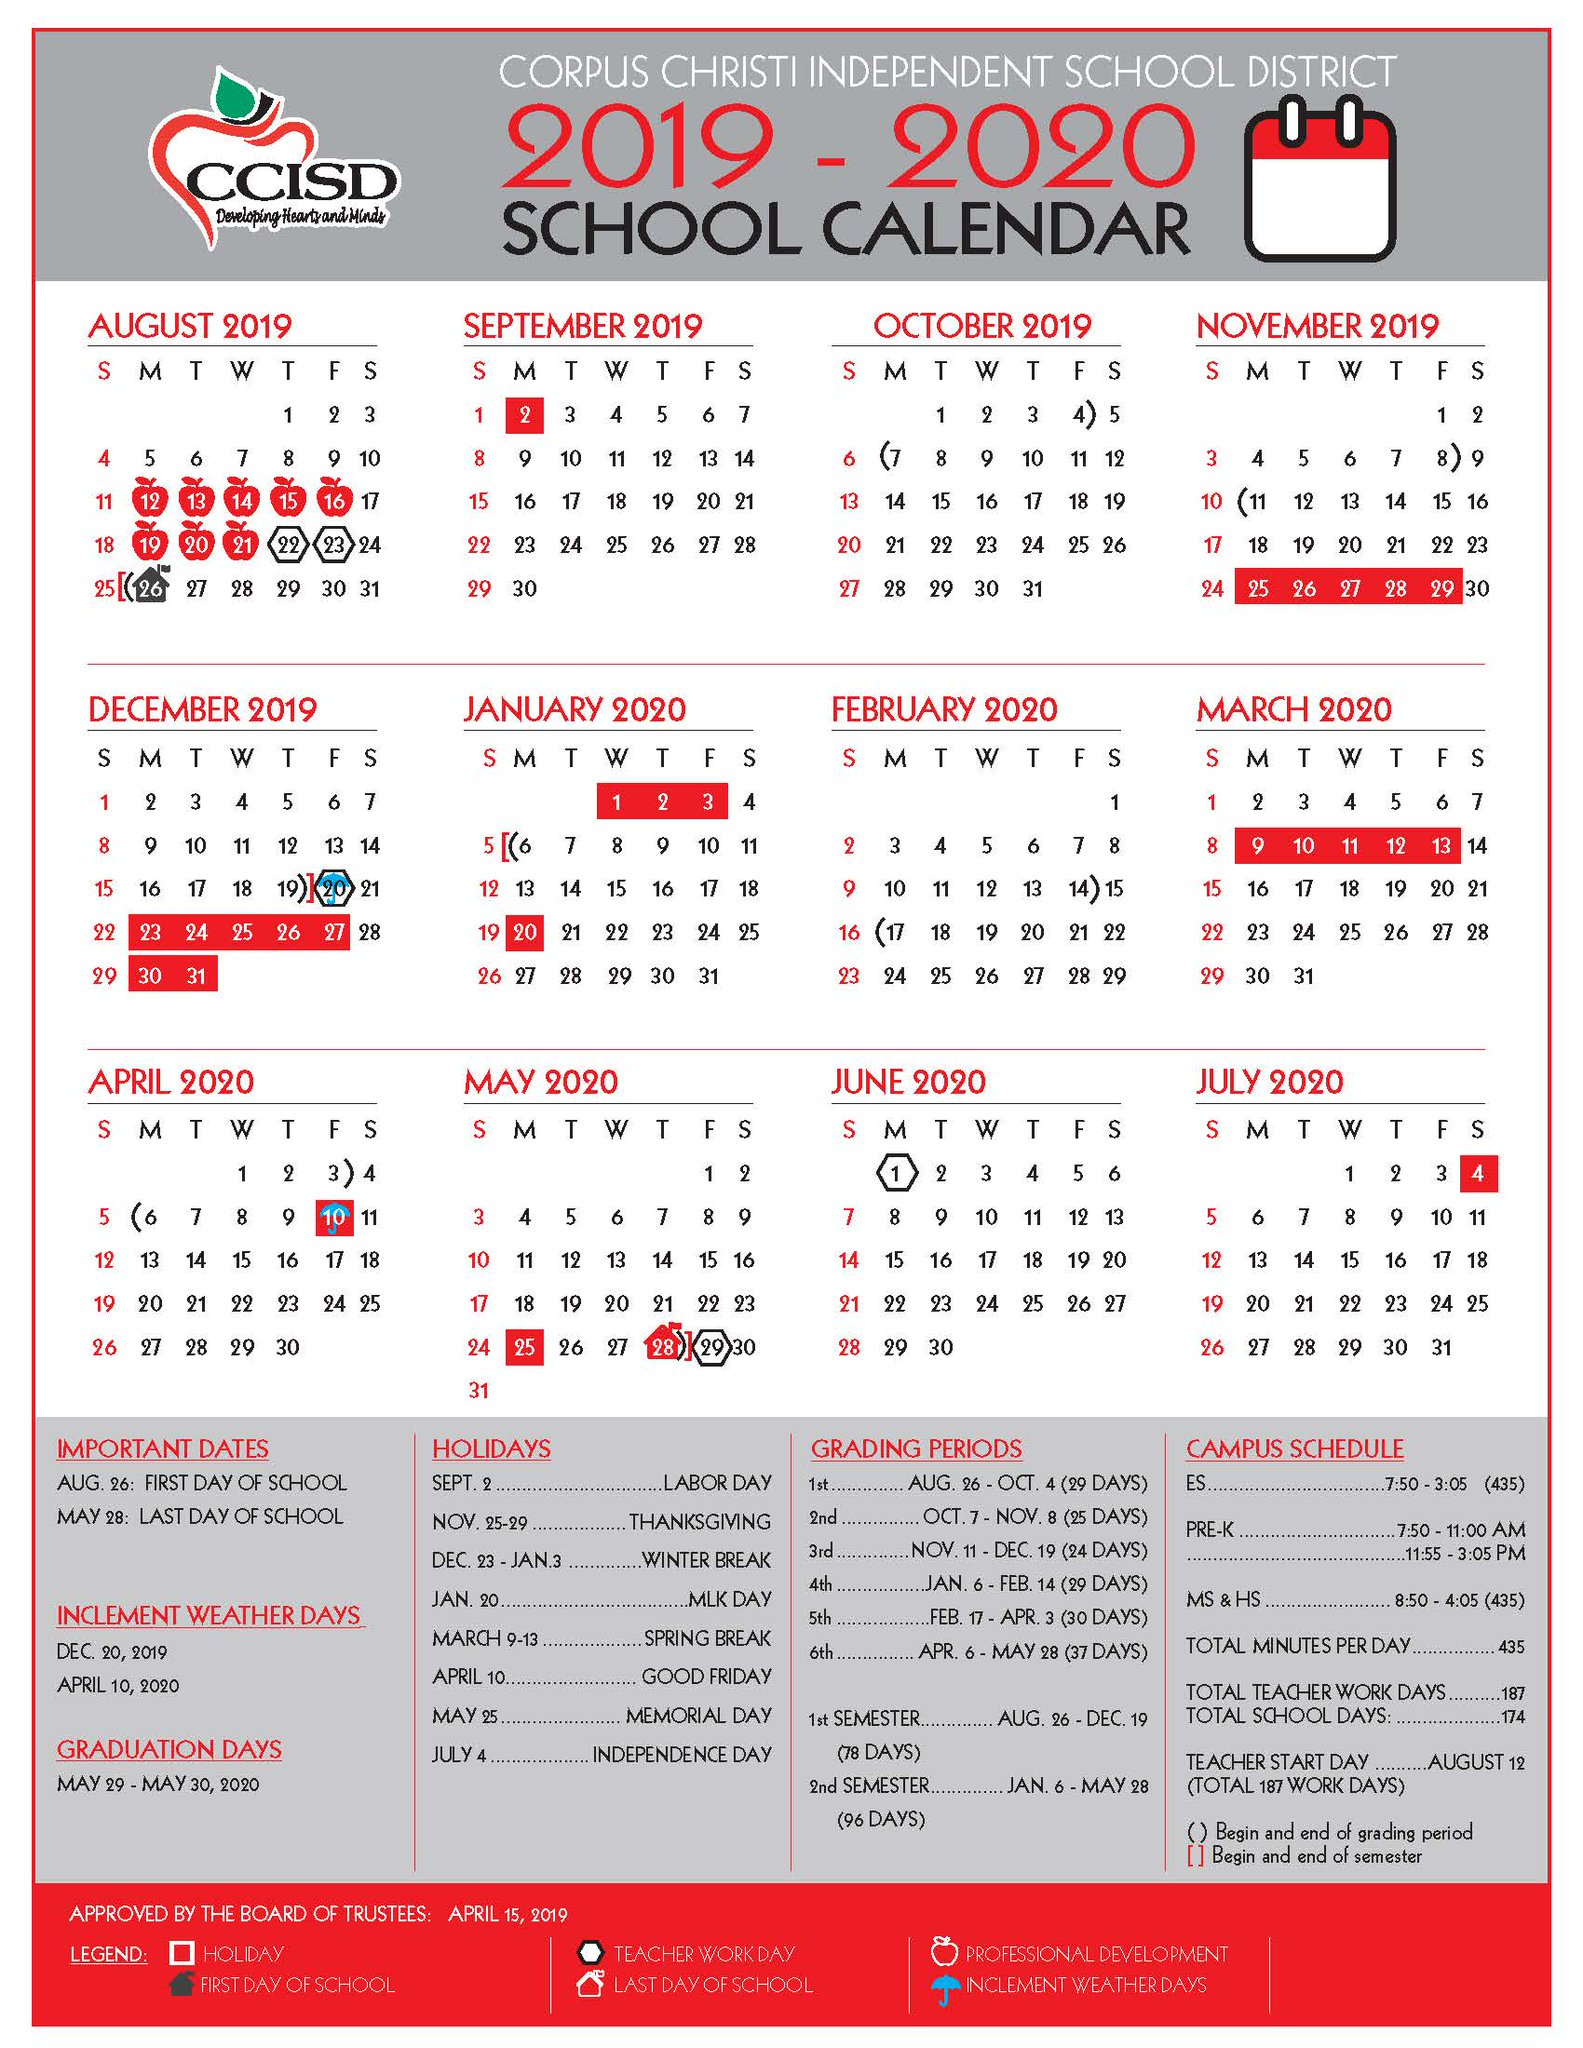 Ccisd Calendar 2022 23.Ccisd Twitterissa Here S Our 2019 2020 School Calendar With Campus Schedules Holidays And Grading Periods To Help You Prepare For Another Great School Year Backtoschool Chooseccisd Link Https T Co Bo0lxxkzvw Https T Co 5o1xvrf1mi